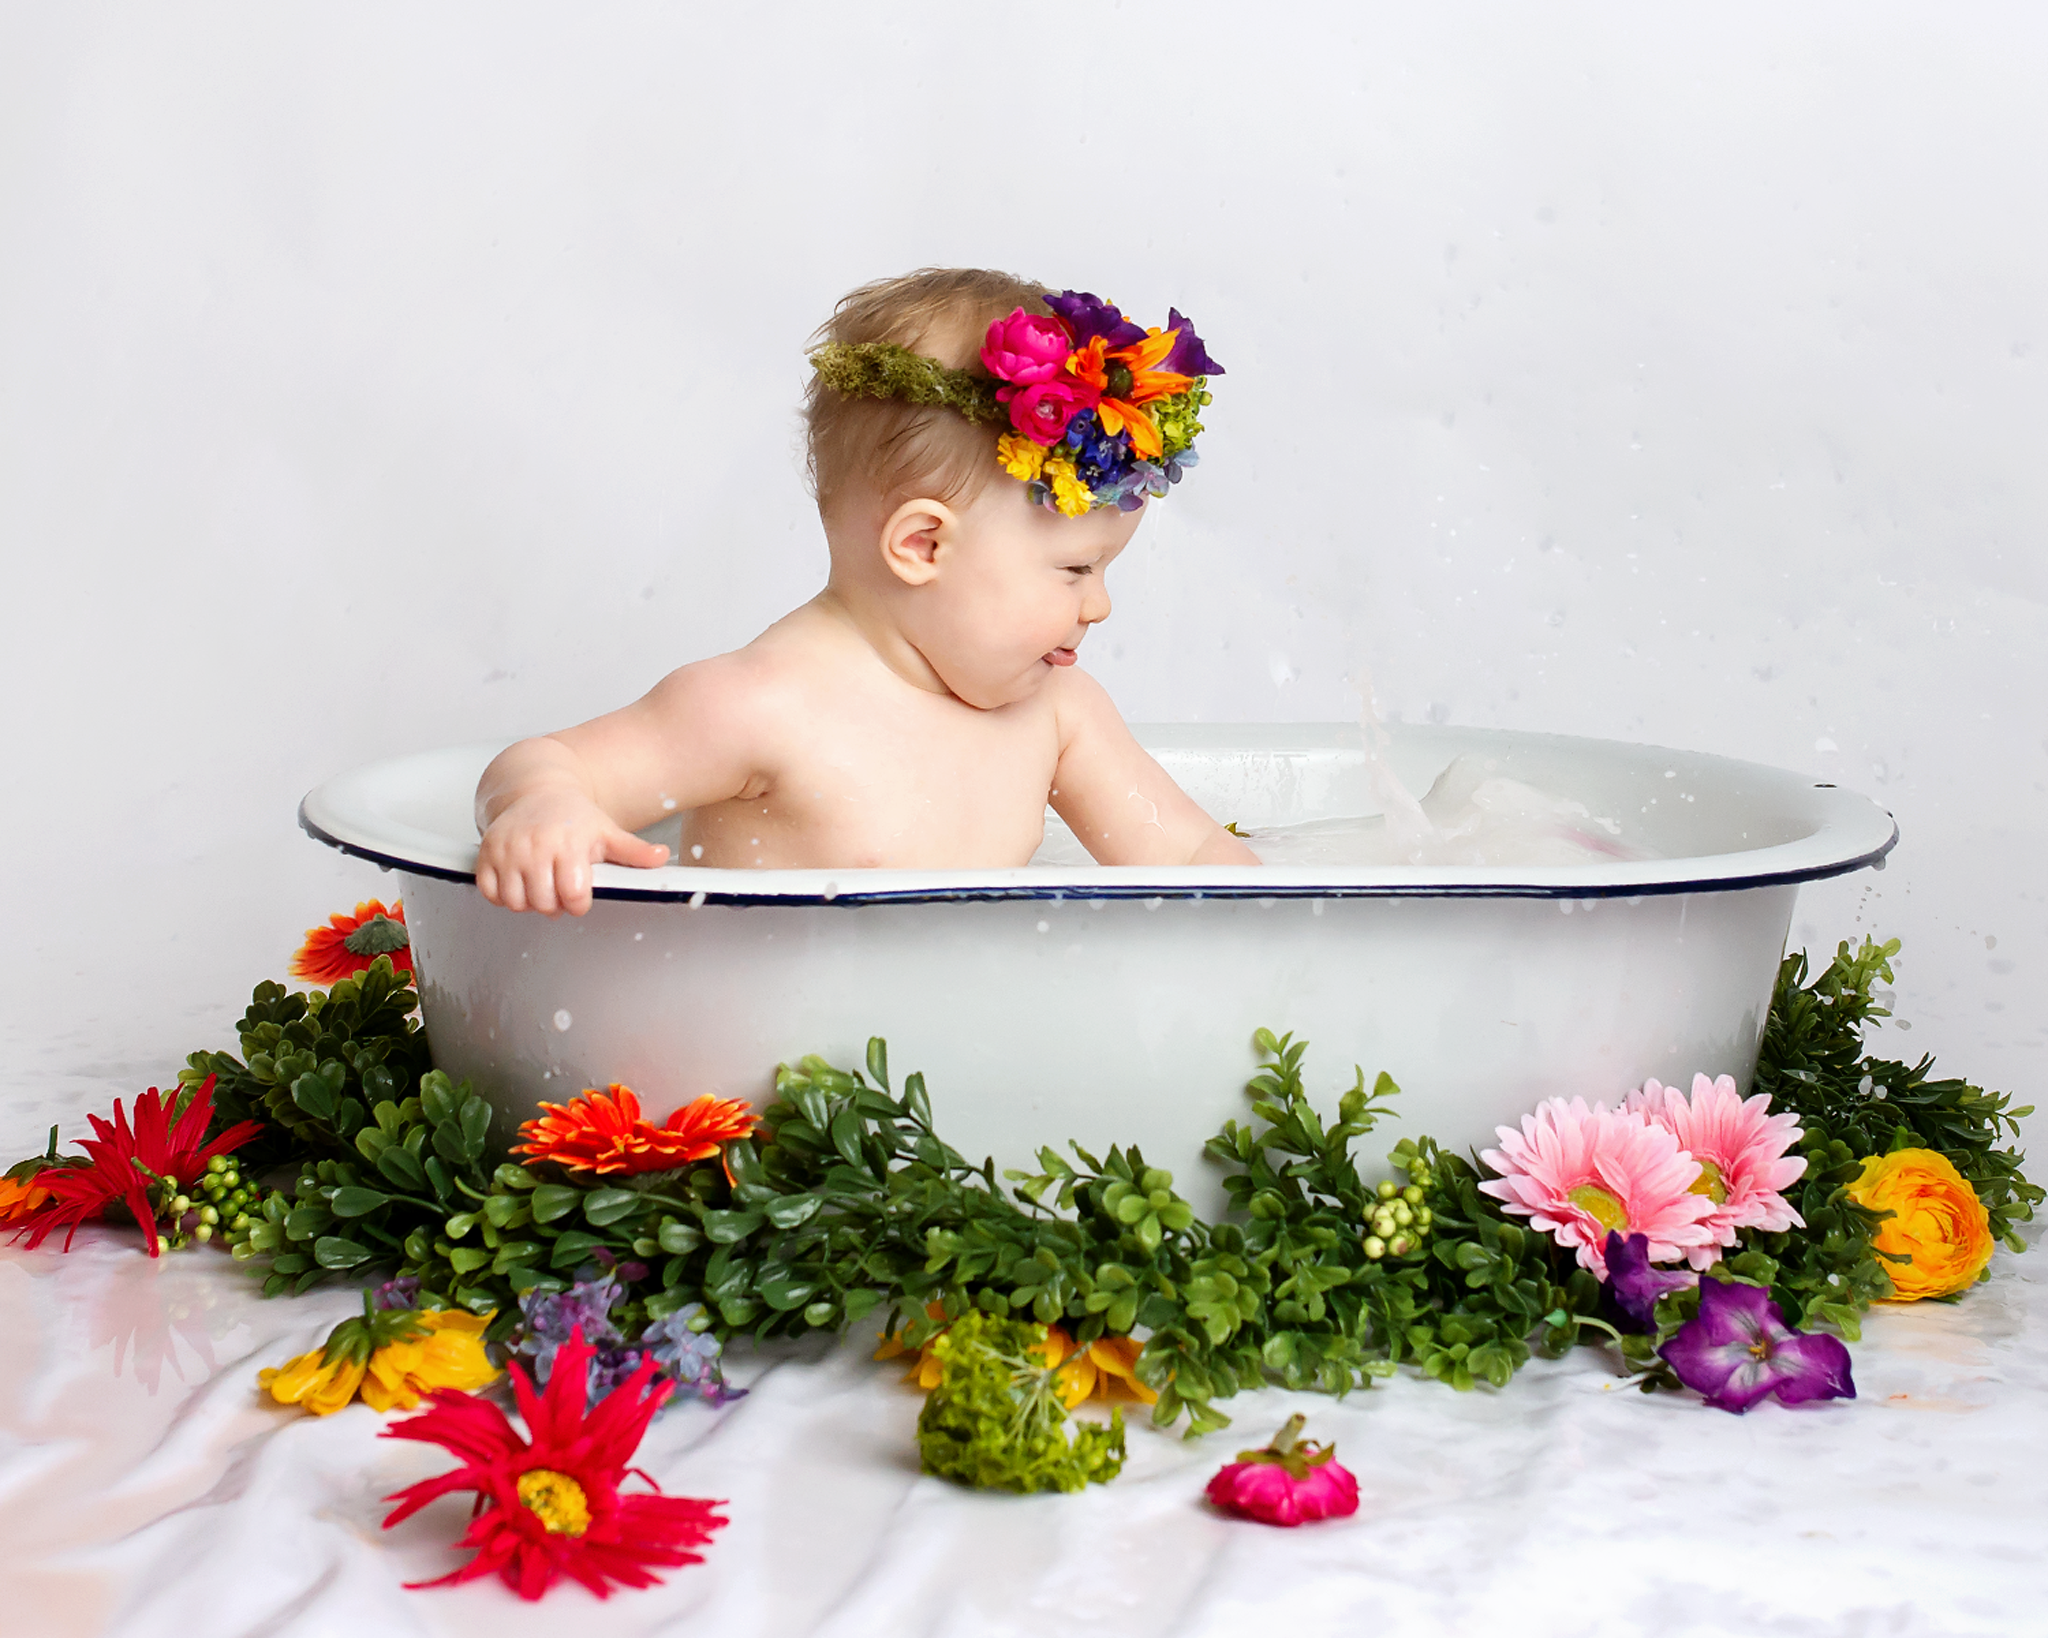 milk and fruit bath $250 - Milk and or Fruit Bath's are so much fun and can be used as a Complete Milestone Experience or just because! Who doesn't love to see their littles giggling and splashing? Milk/Fruit Bath sessions include a pre-consultation, up to 1 hour of studio time, private online proofing and final galleries with 10 - 12 proofs, 8 high resolution digital images (your choice) delivered via digital download that are printable up to 8x10 with print release. You will also receive 15% off additional digital images, wall art, albums and prints.